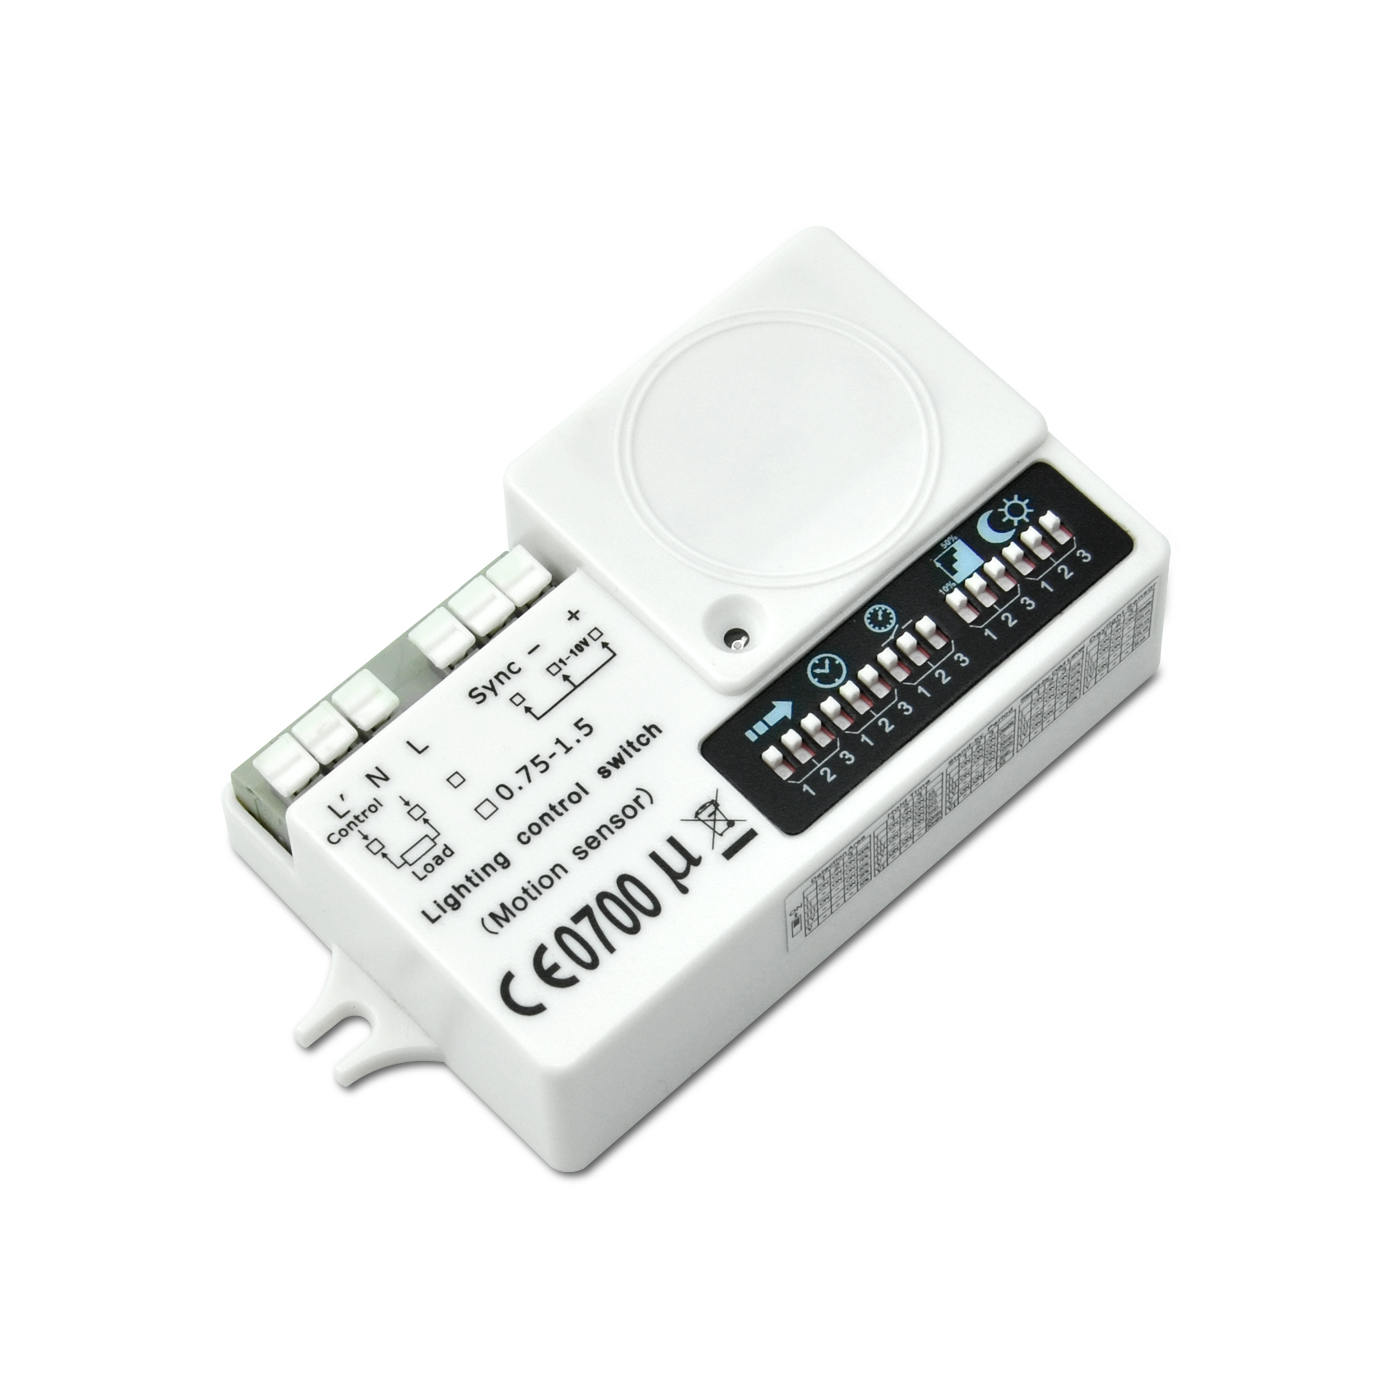 OEM/ODM Manufacturer Wifi Remote Control -